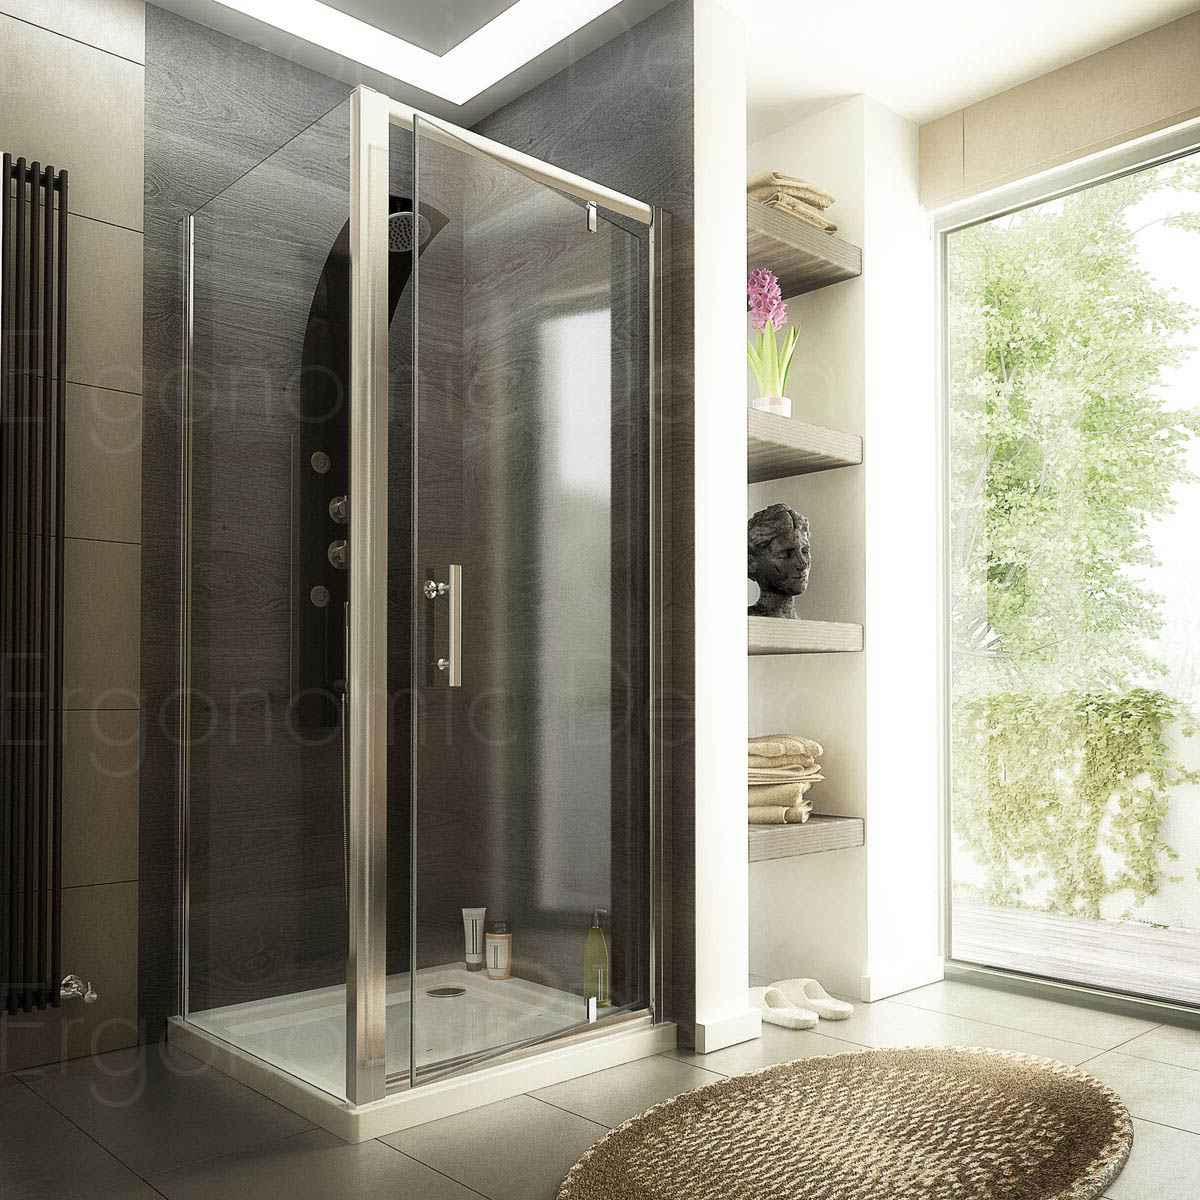 900 X 760 Pivot Door Glass Shower Enclosure With Stone Tray And Waste